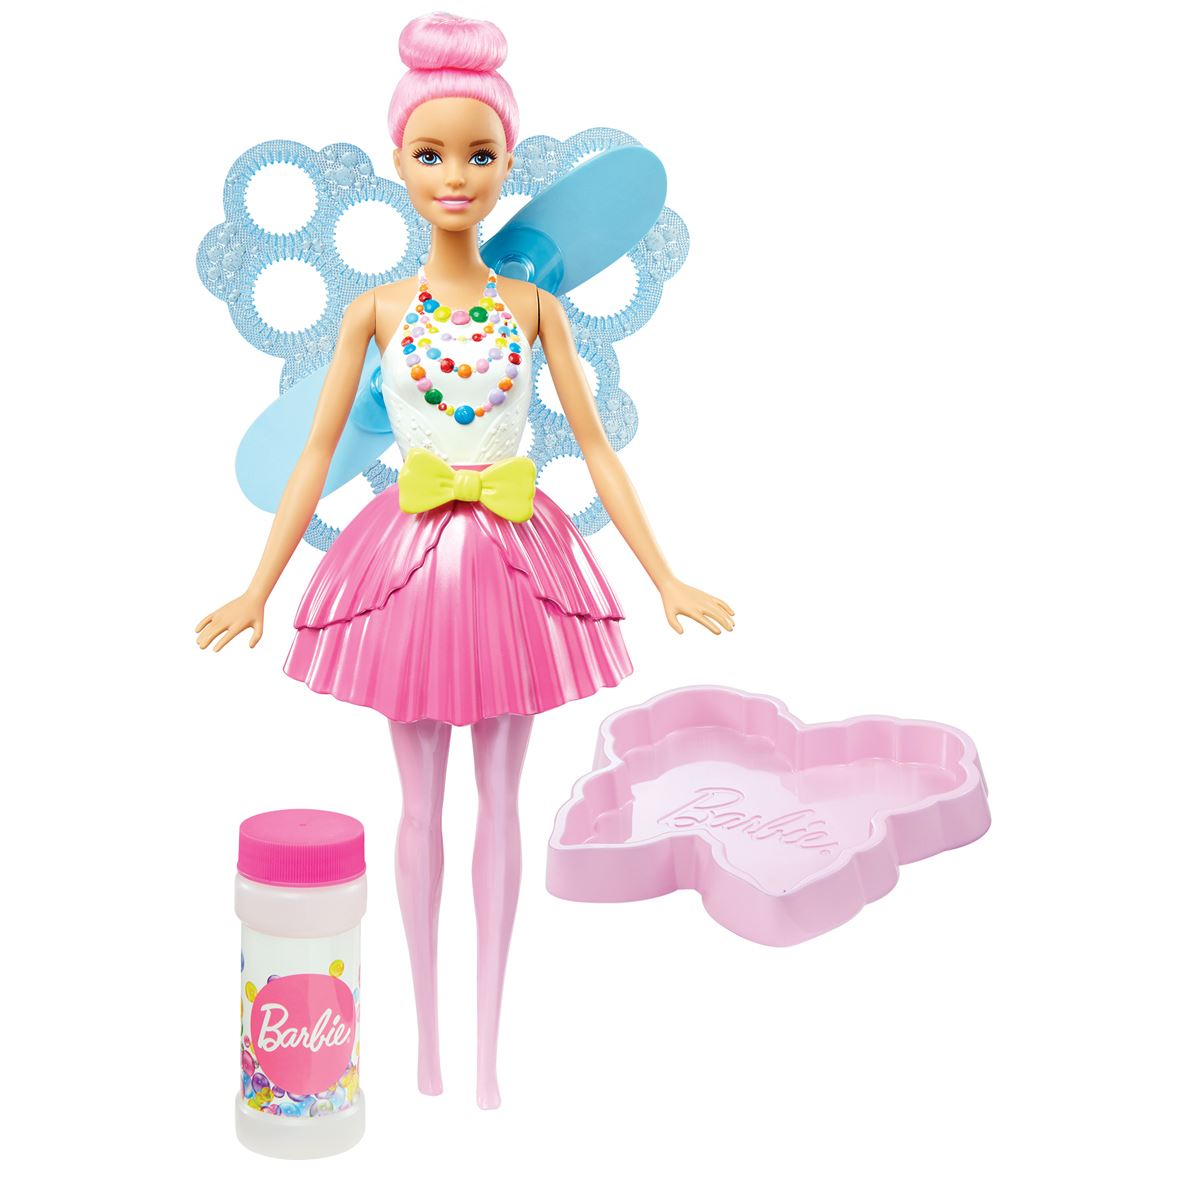 Barbie Dreamtopia Hada Burbujas Mágicas